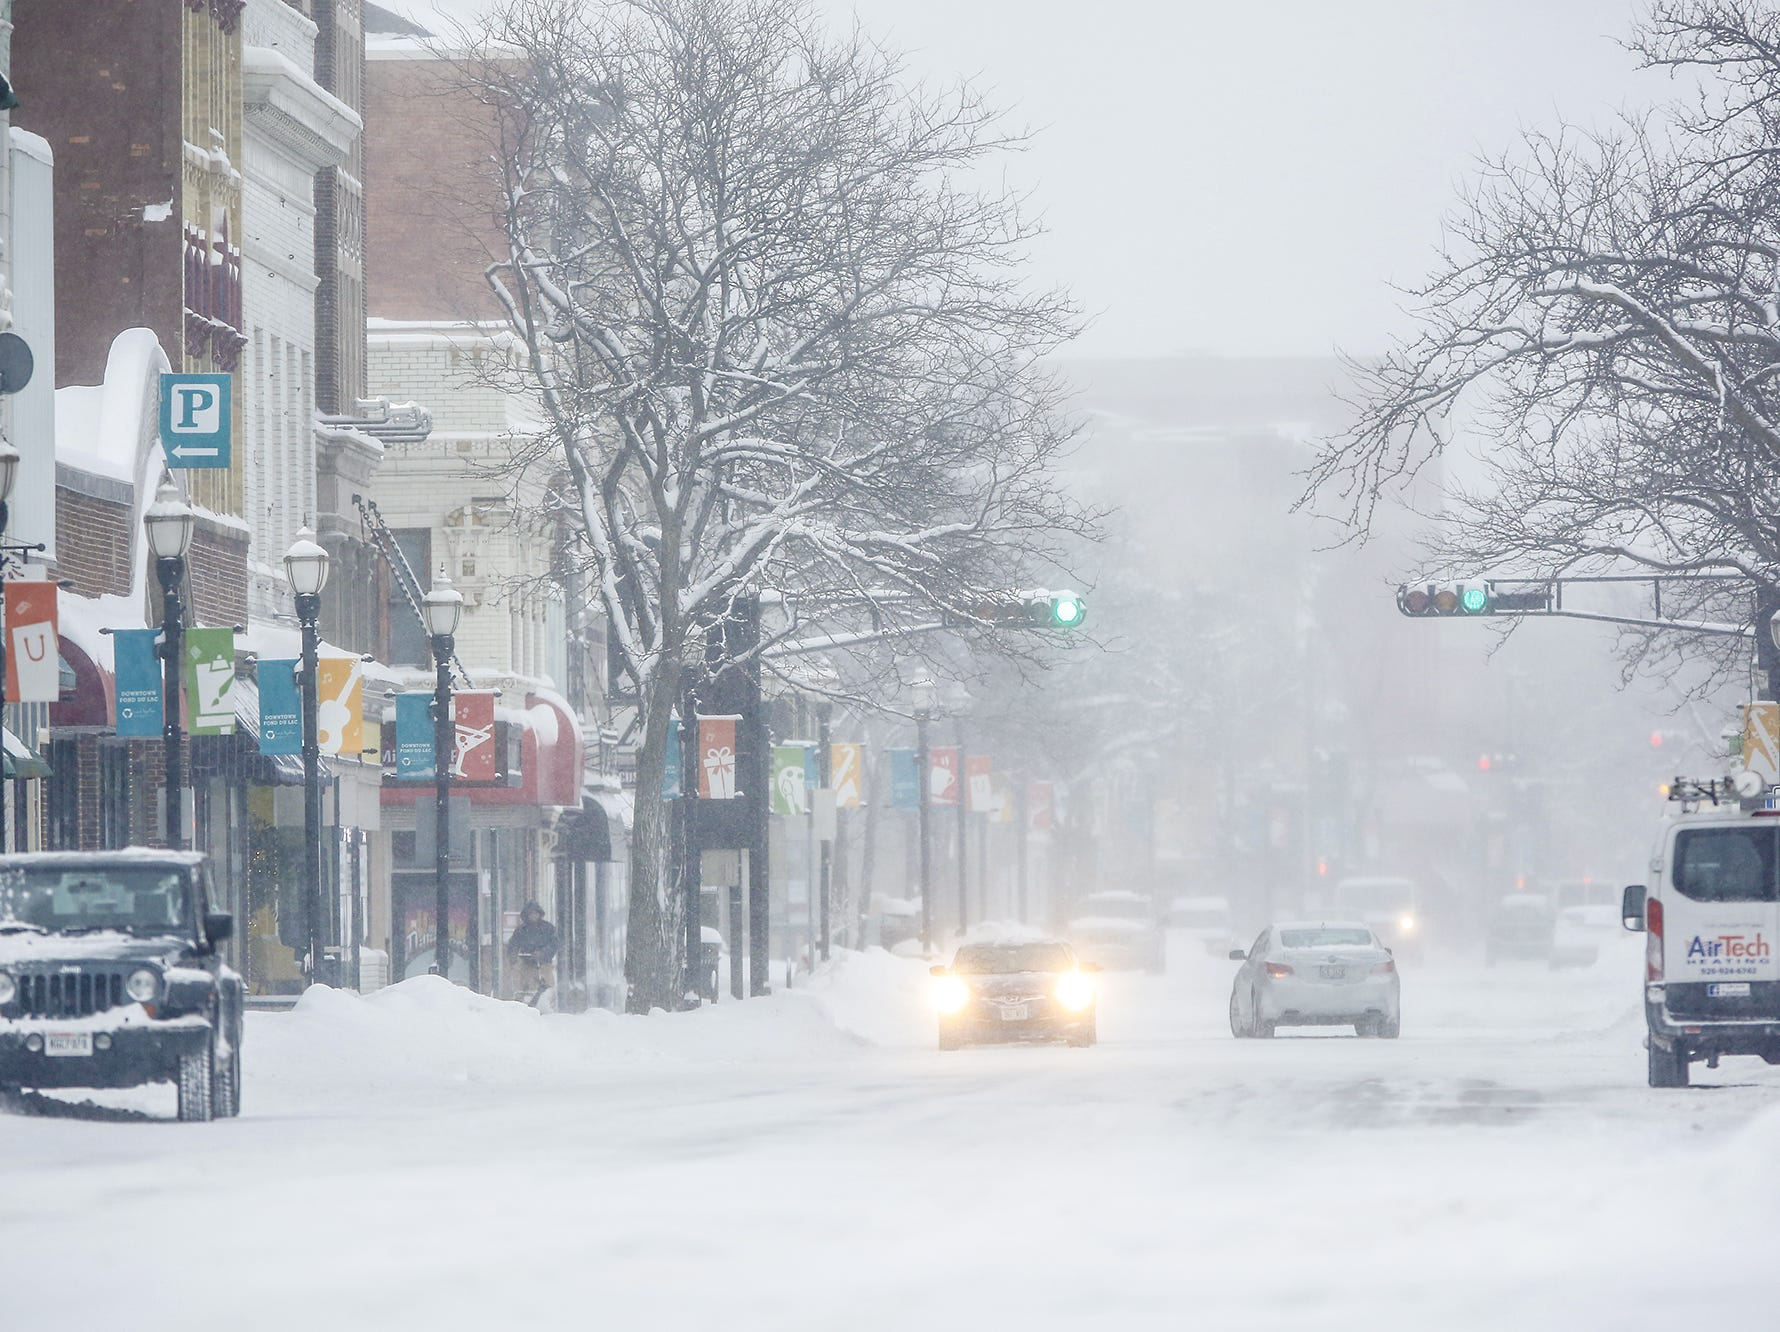 Downtown Fond du Lac, Wisconsin was snow-covered and slippery Monday, Jan. 28, 2019, during a snow storm that hampered travel and closed businesses and schools in the Fond du Lac area. This was the Fond du Lac area's second snow storm in five days.